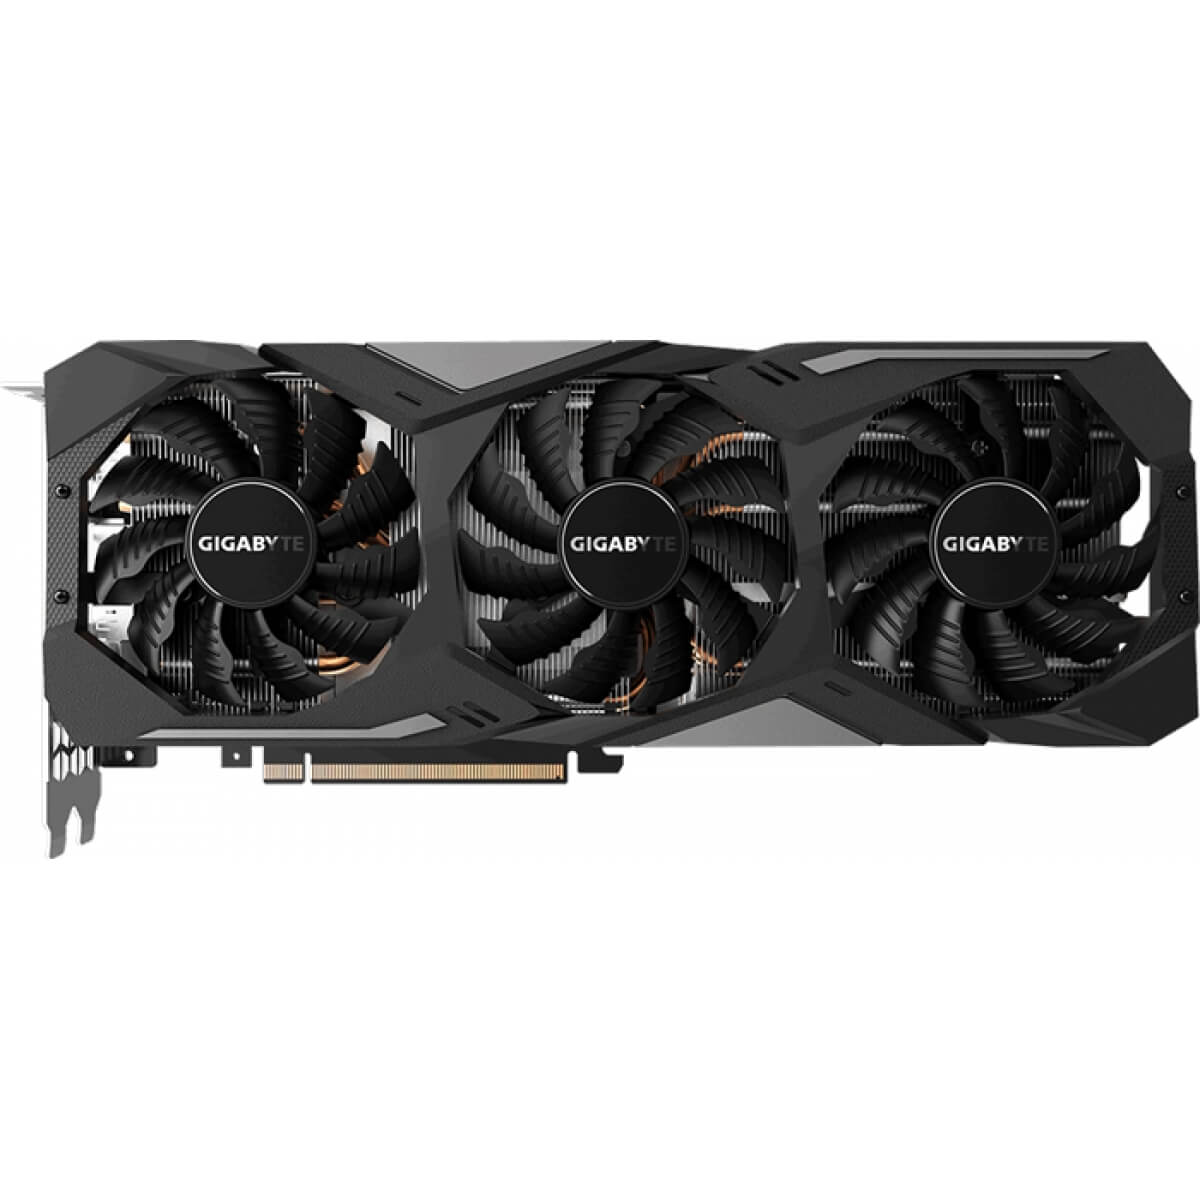 Placa de Vídeo Gigabyte RTX 2080 Gaming 8GB GDDR6 256 BITS